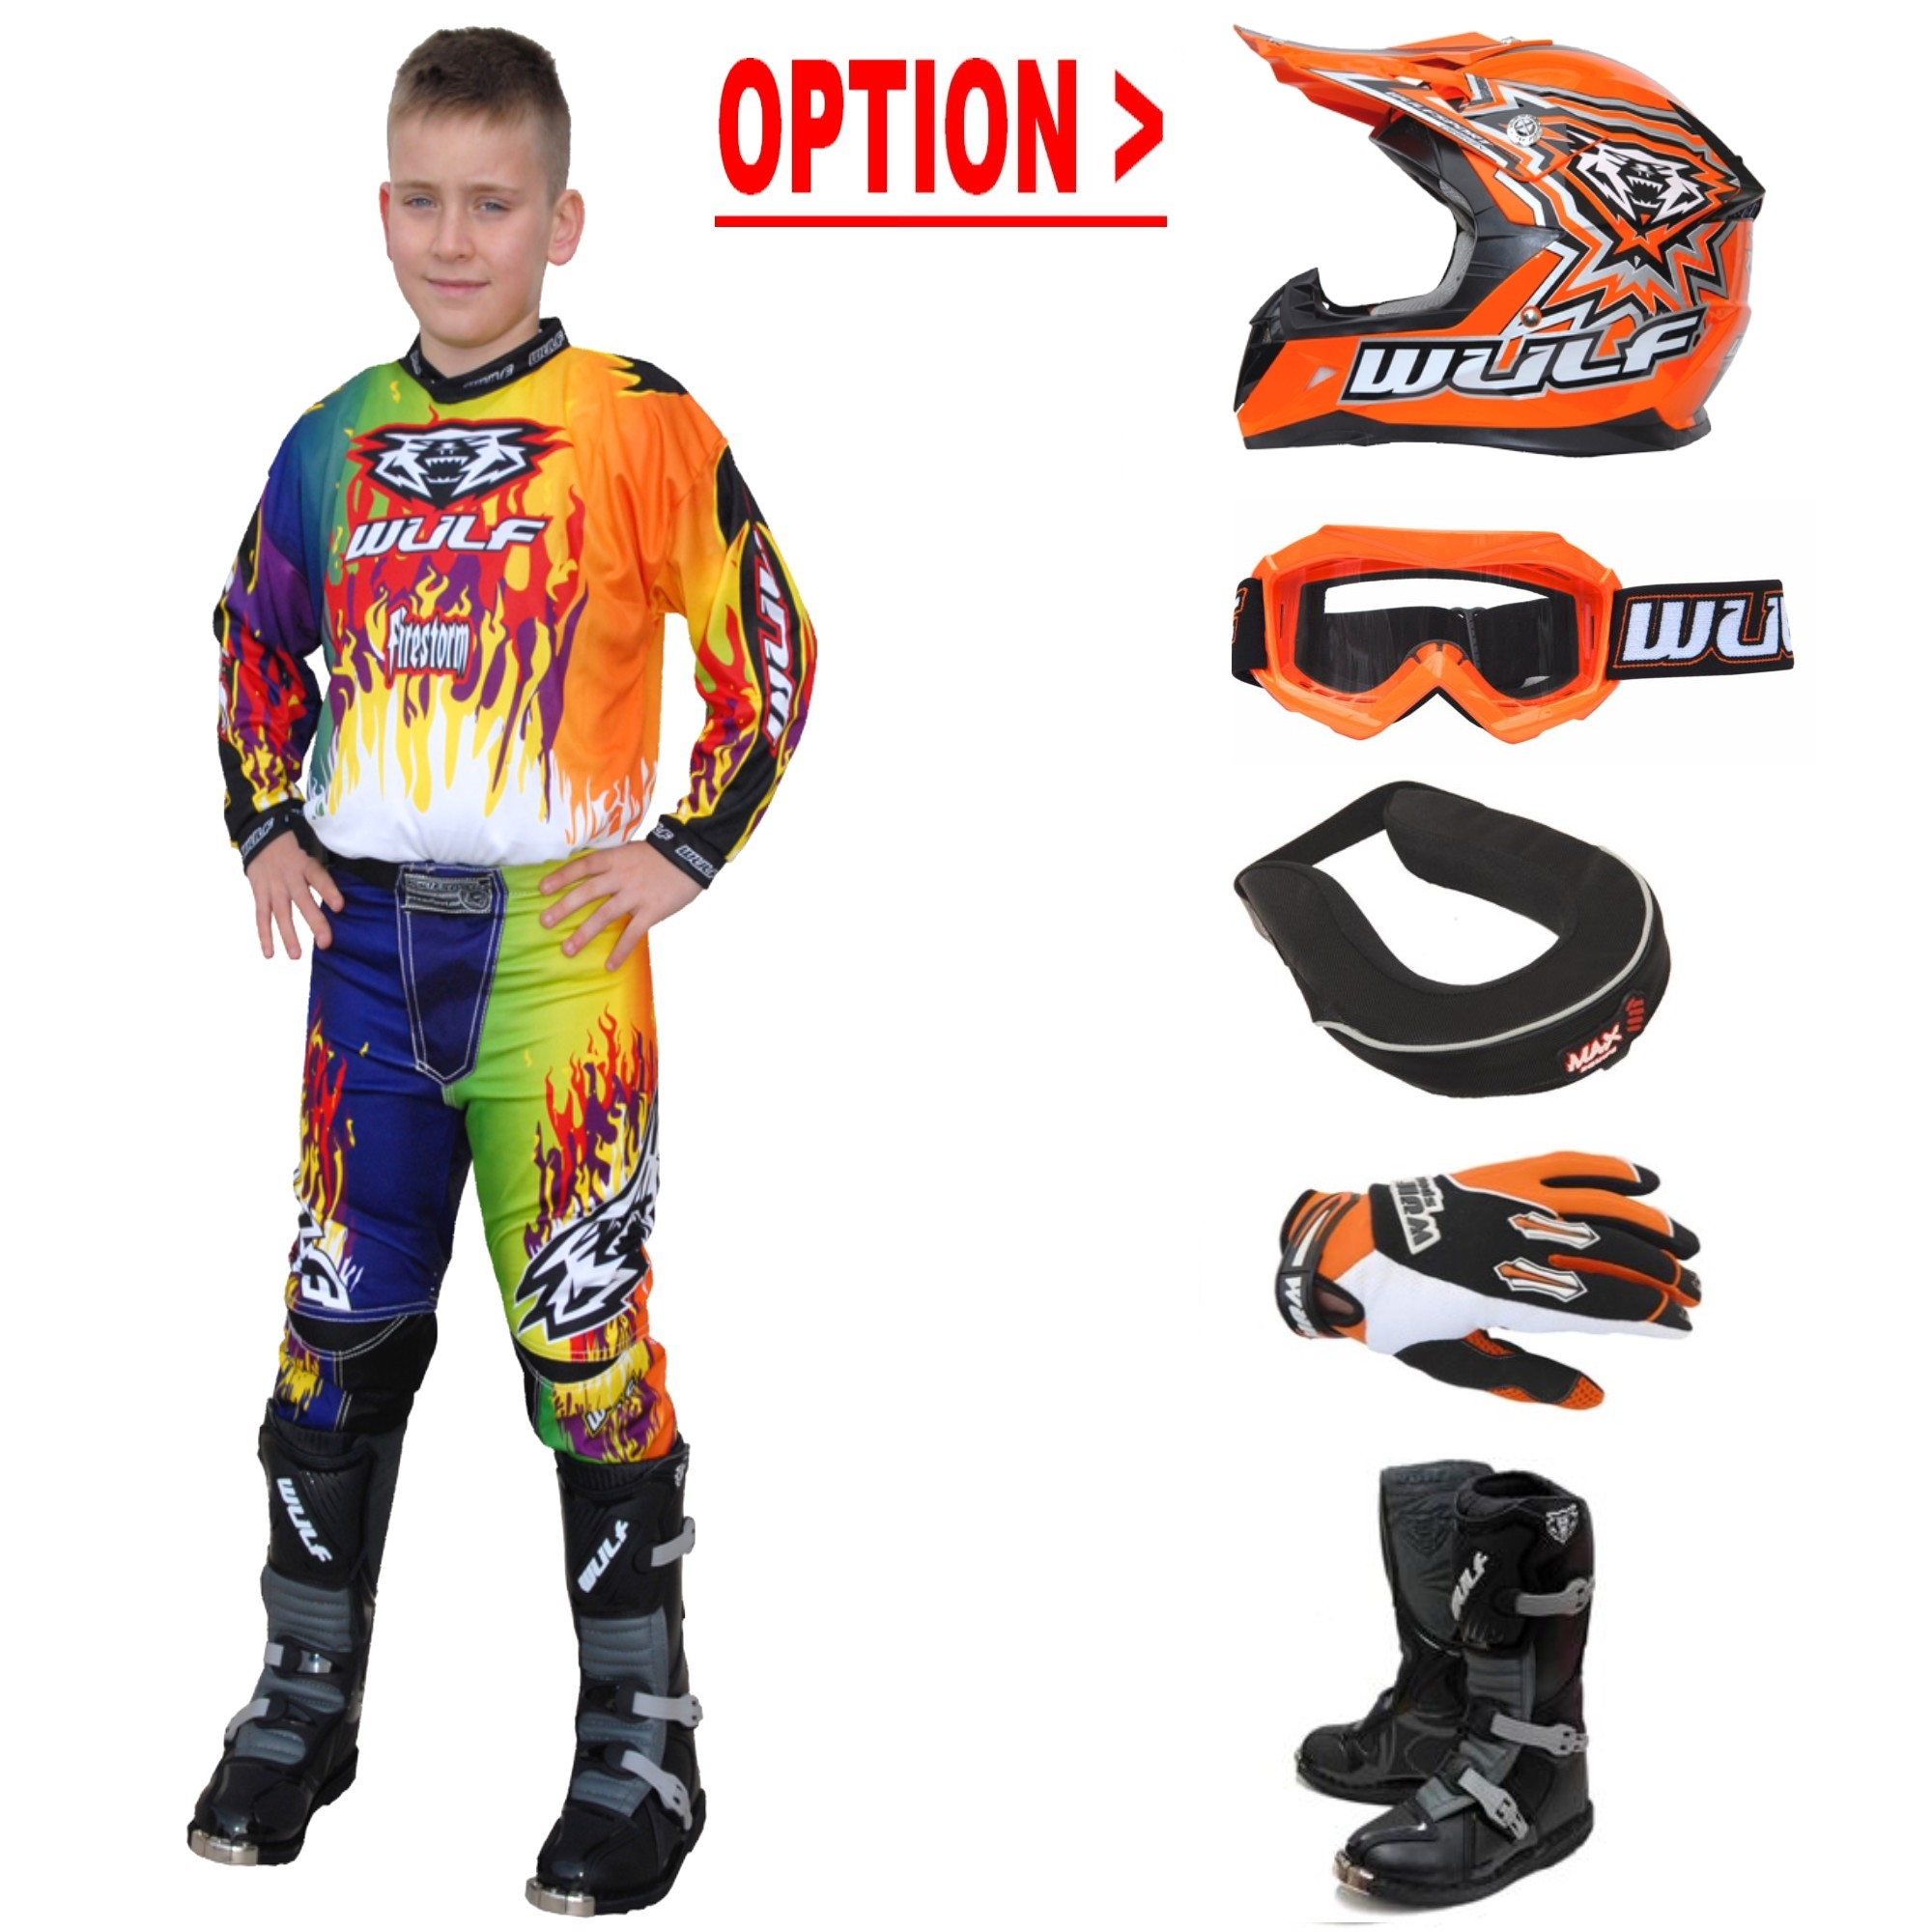 TENUE A OPTIONS ENFANT WULFSPORT STORM MULTI.O 4 à 14a T20 à 28